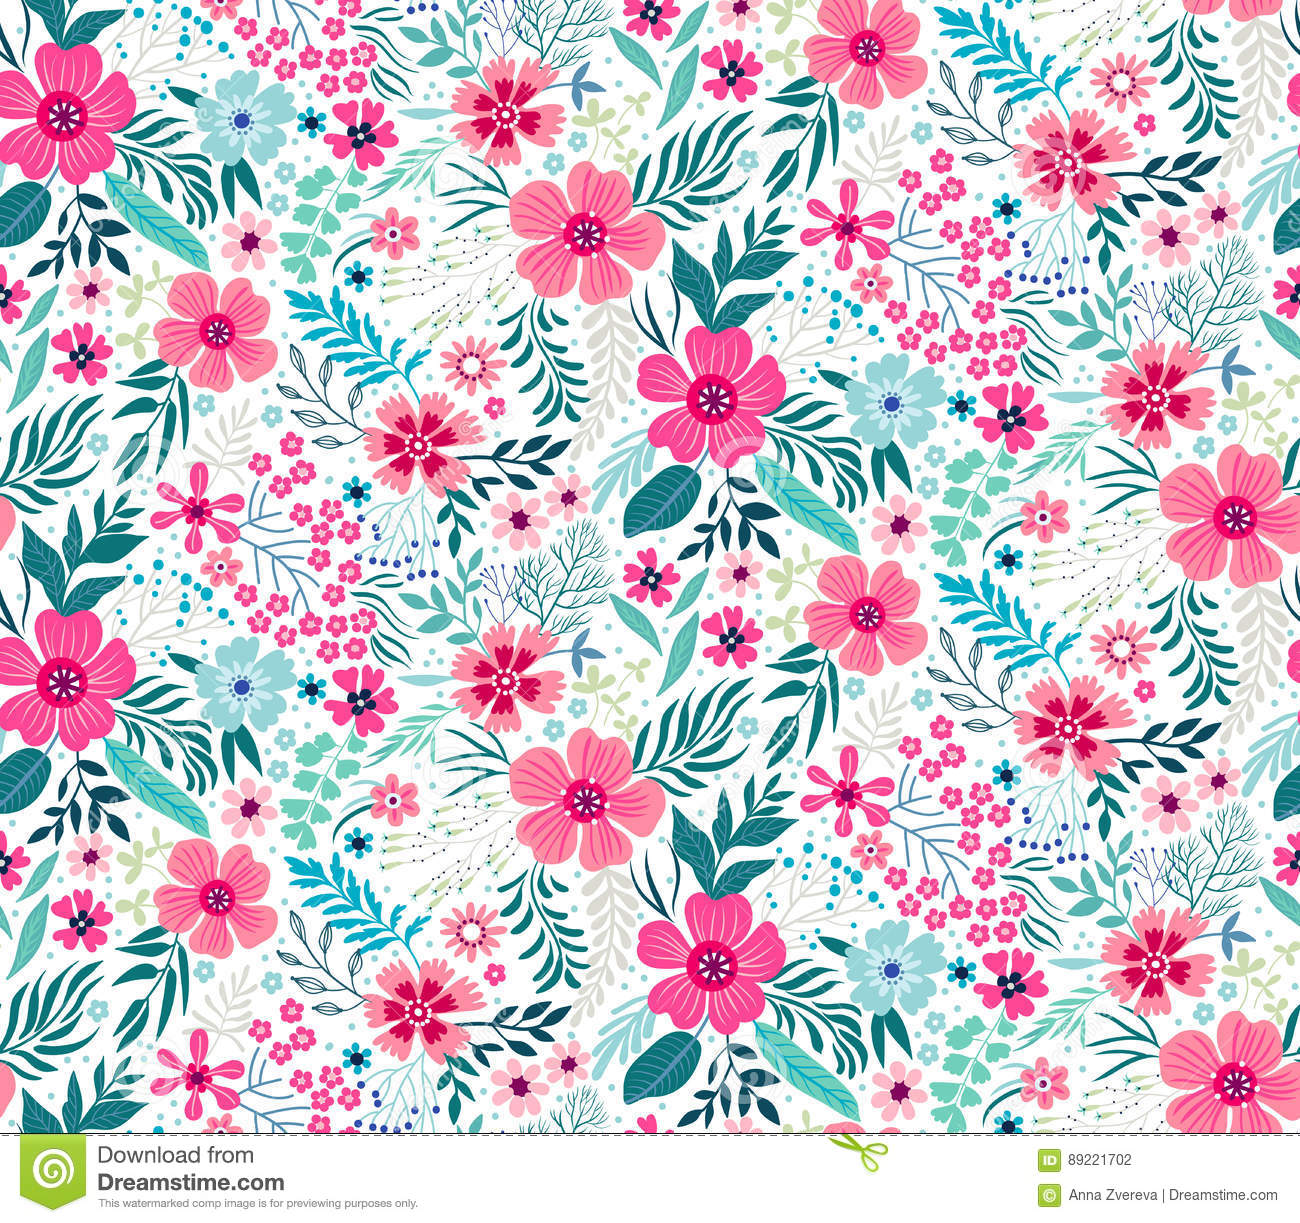 Cute floral pattern stock illustration illustration of gift 89221702 pretty flowers on white backgroung printing with small scale pink flowers ditsy print seamless texture spring bouquet mightylinksfo